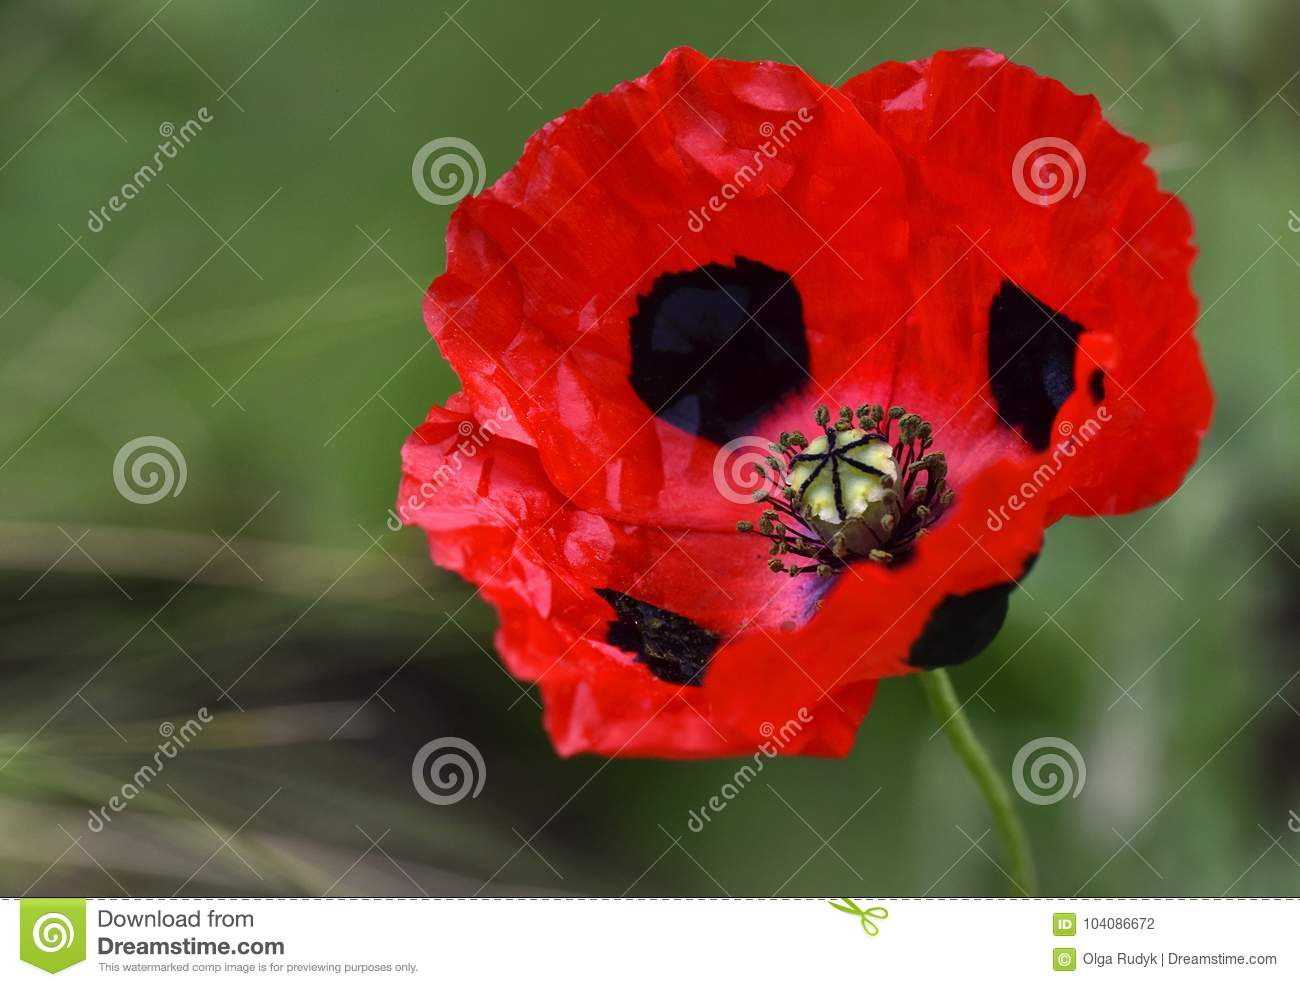 A close up of a red and black poppy flower stock photo image of download a close up of a red and black poppy flower stock photo image mightylinksfo